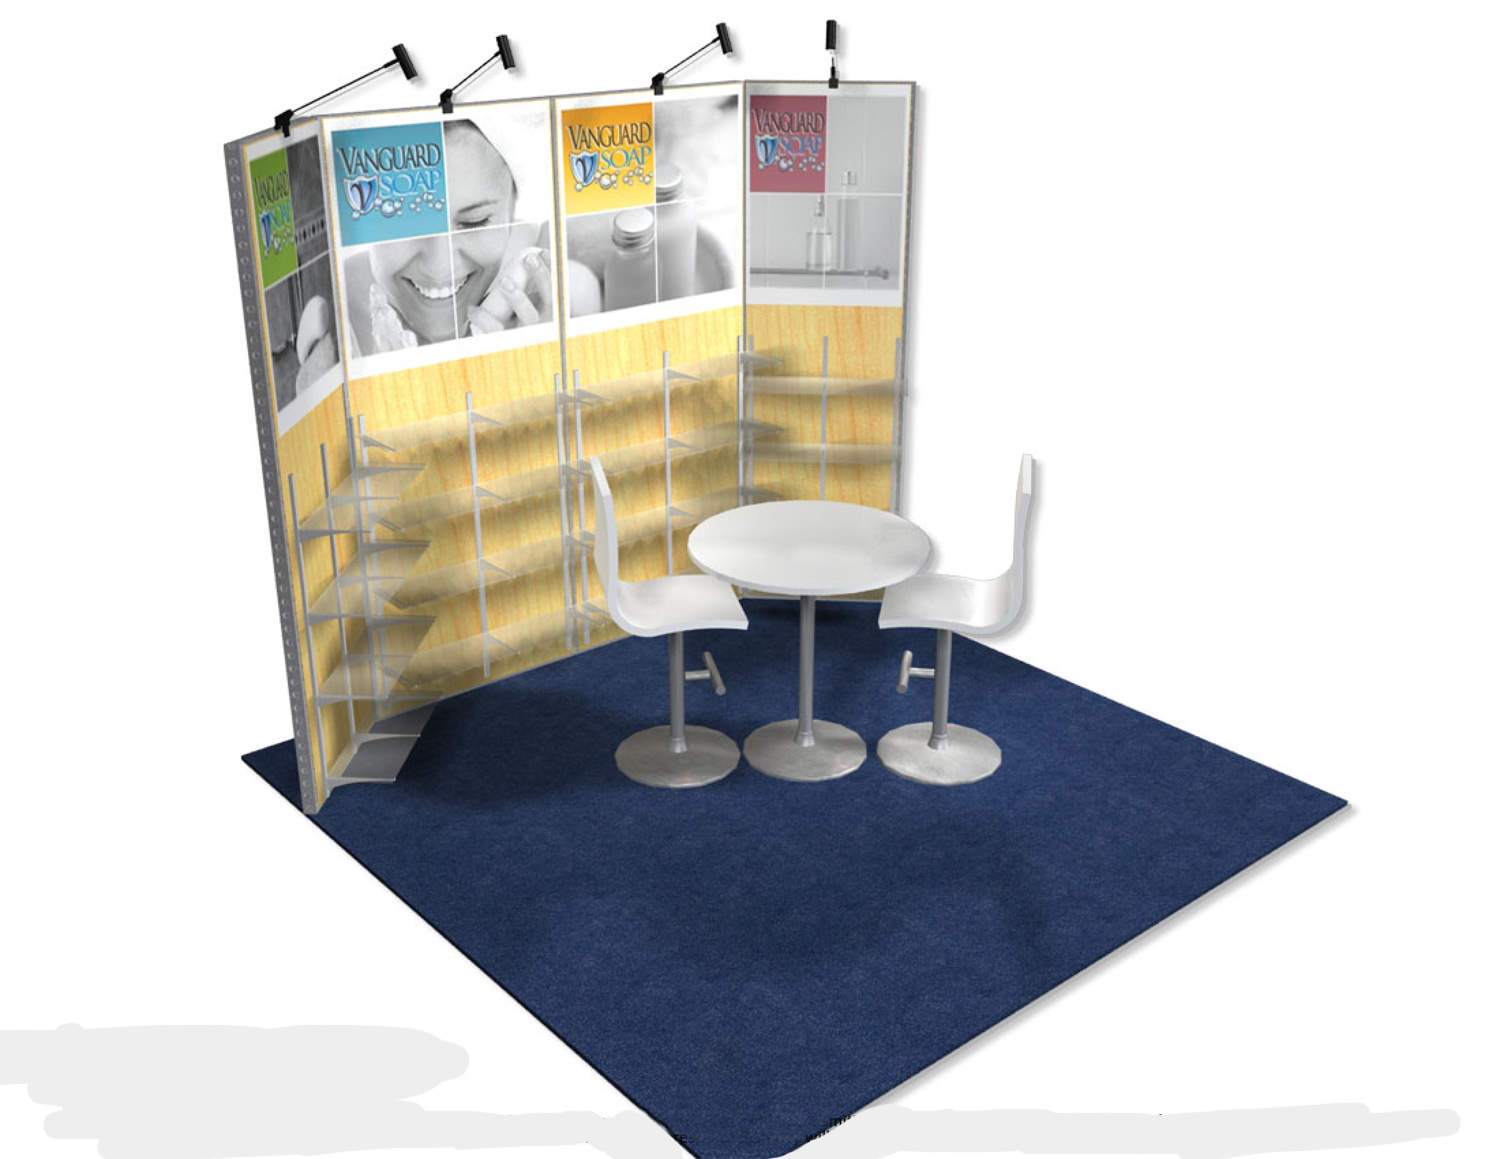 vanguard soap 1010 trade show booth - Booth Design Ideas